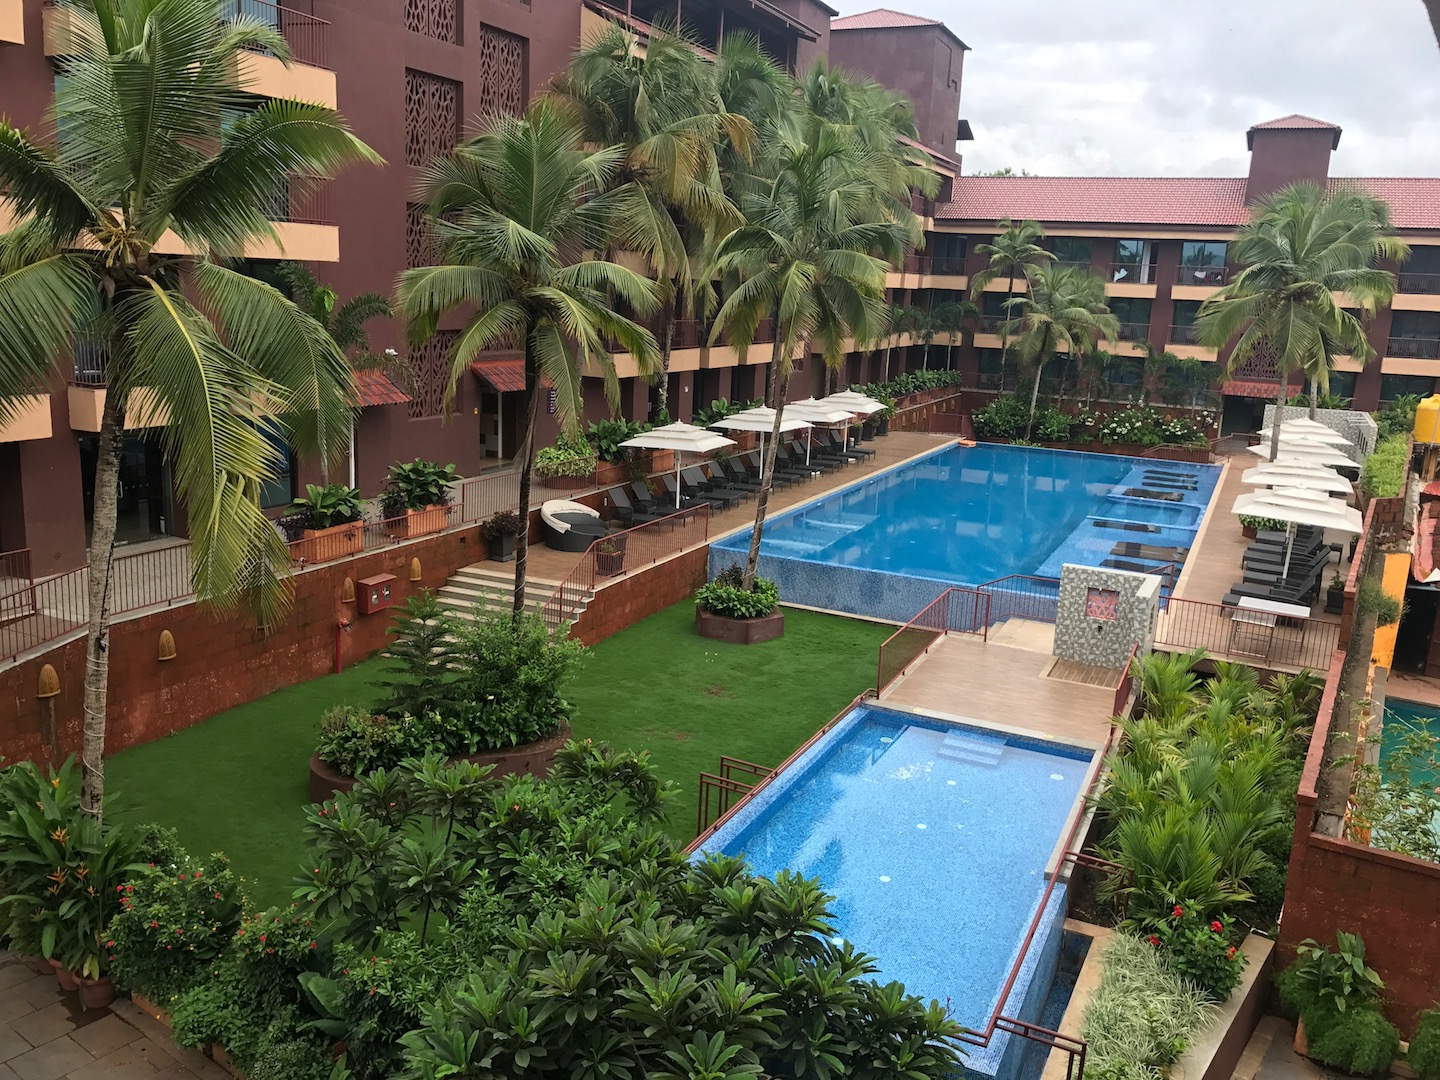 Premier Inn Anjuna – Review